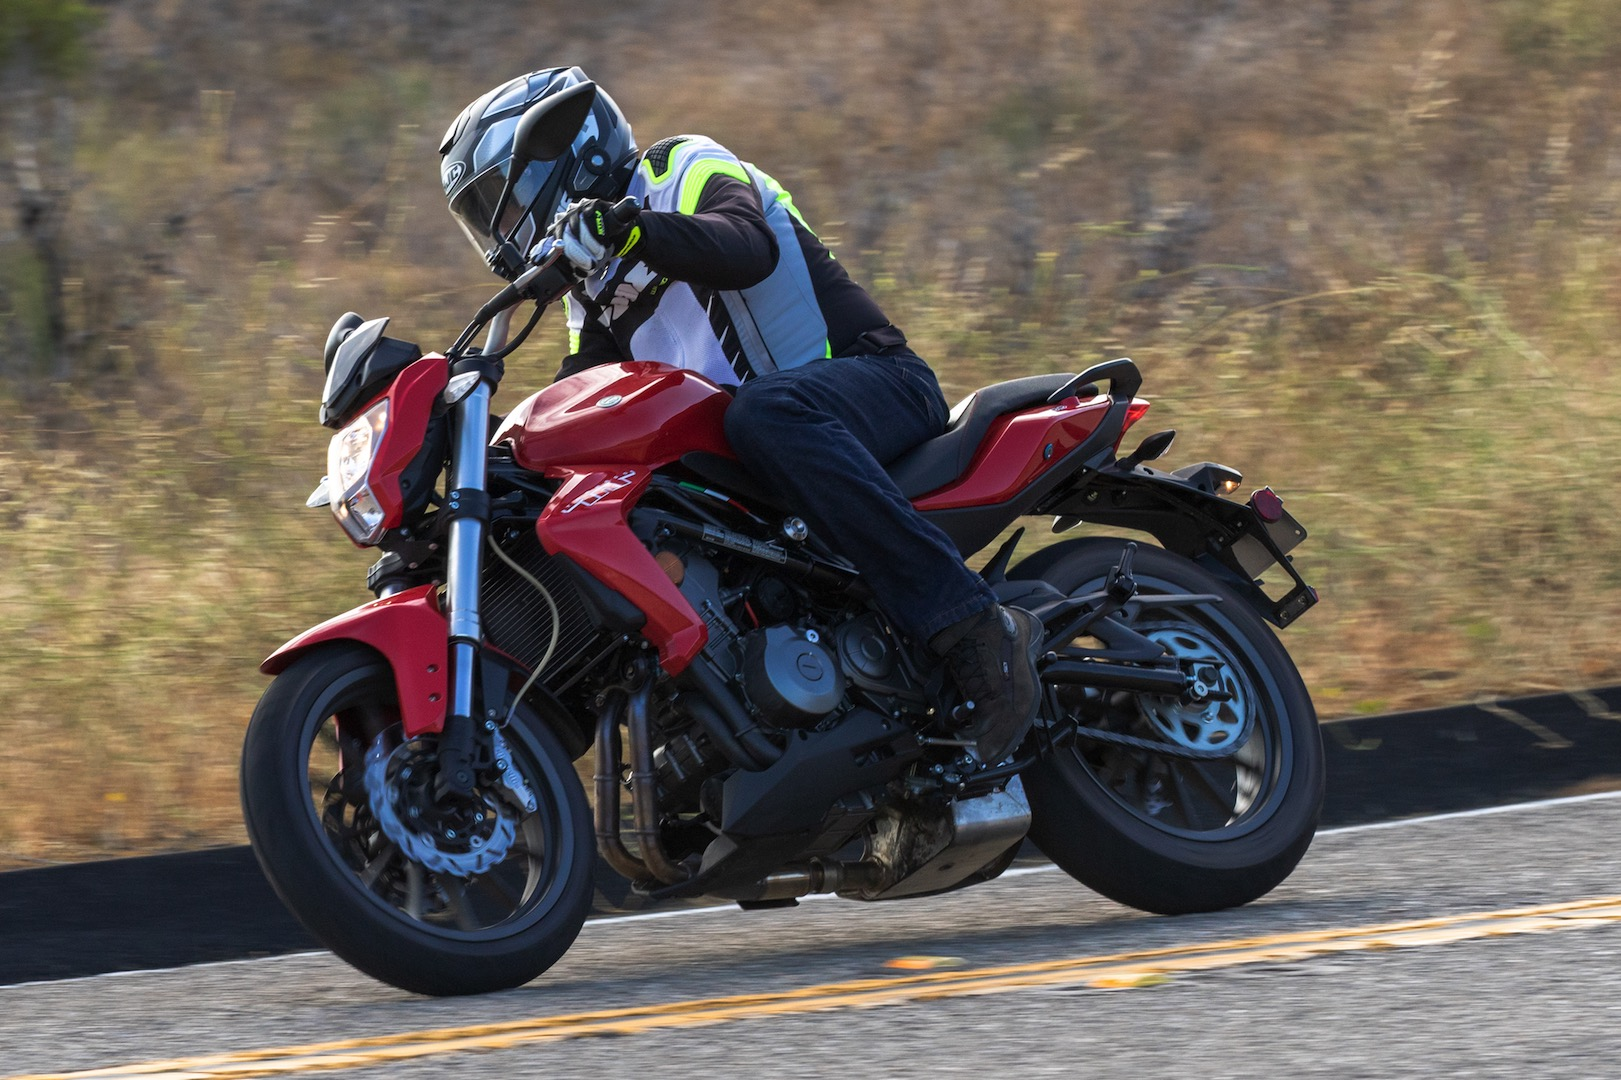 2019 Benelli Tornado TNT 300 Review - novice motorcycle